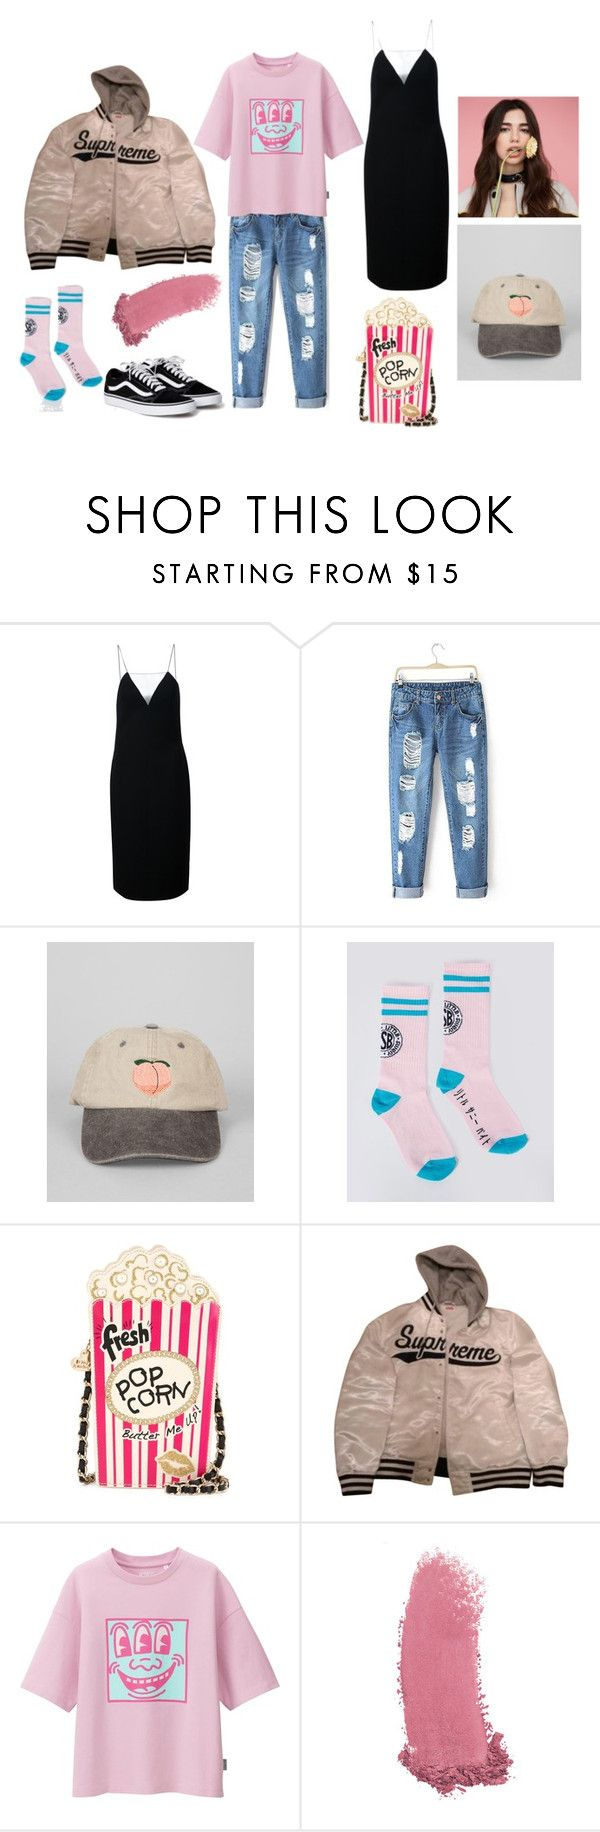 """#untitled7"" by yuna92 on Polyvore featuring Alexander Wang, Lazy Oaf, Betsey Johnson, Supreme, Uniqlo and Gucci"